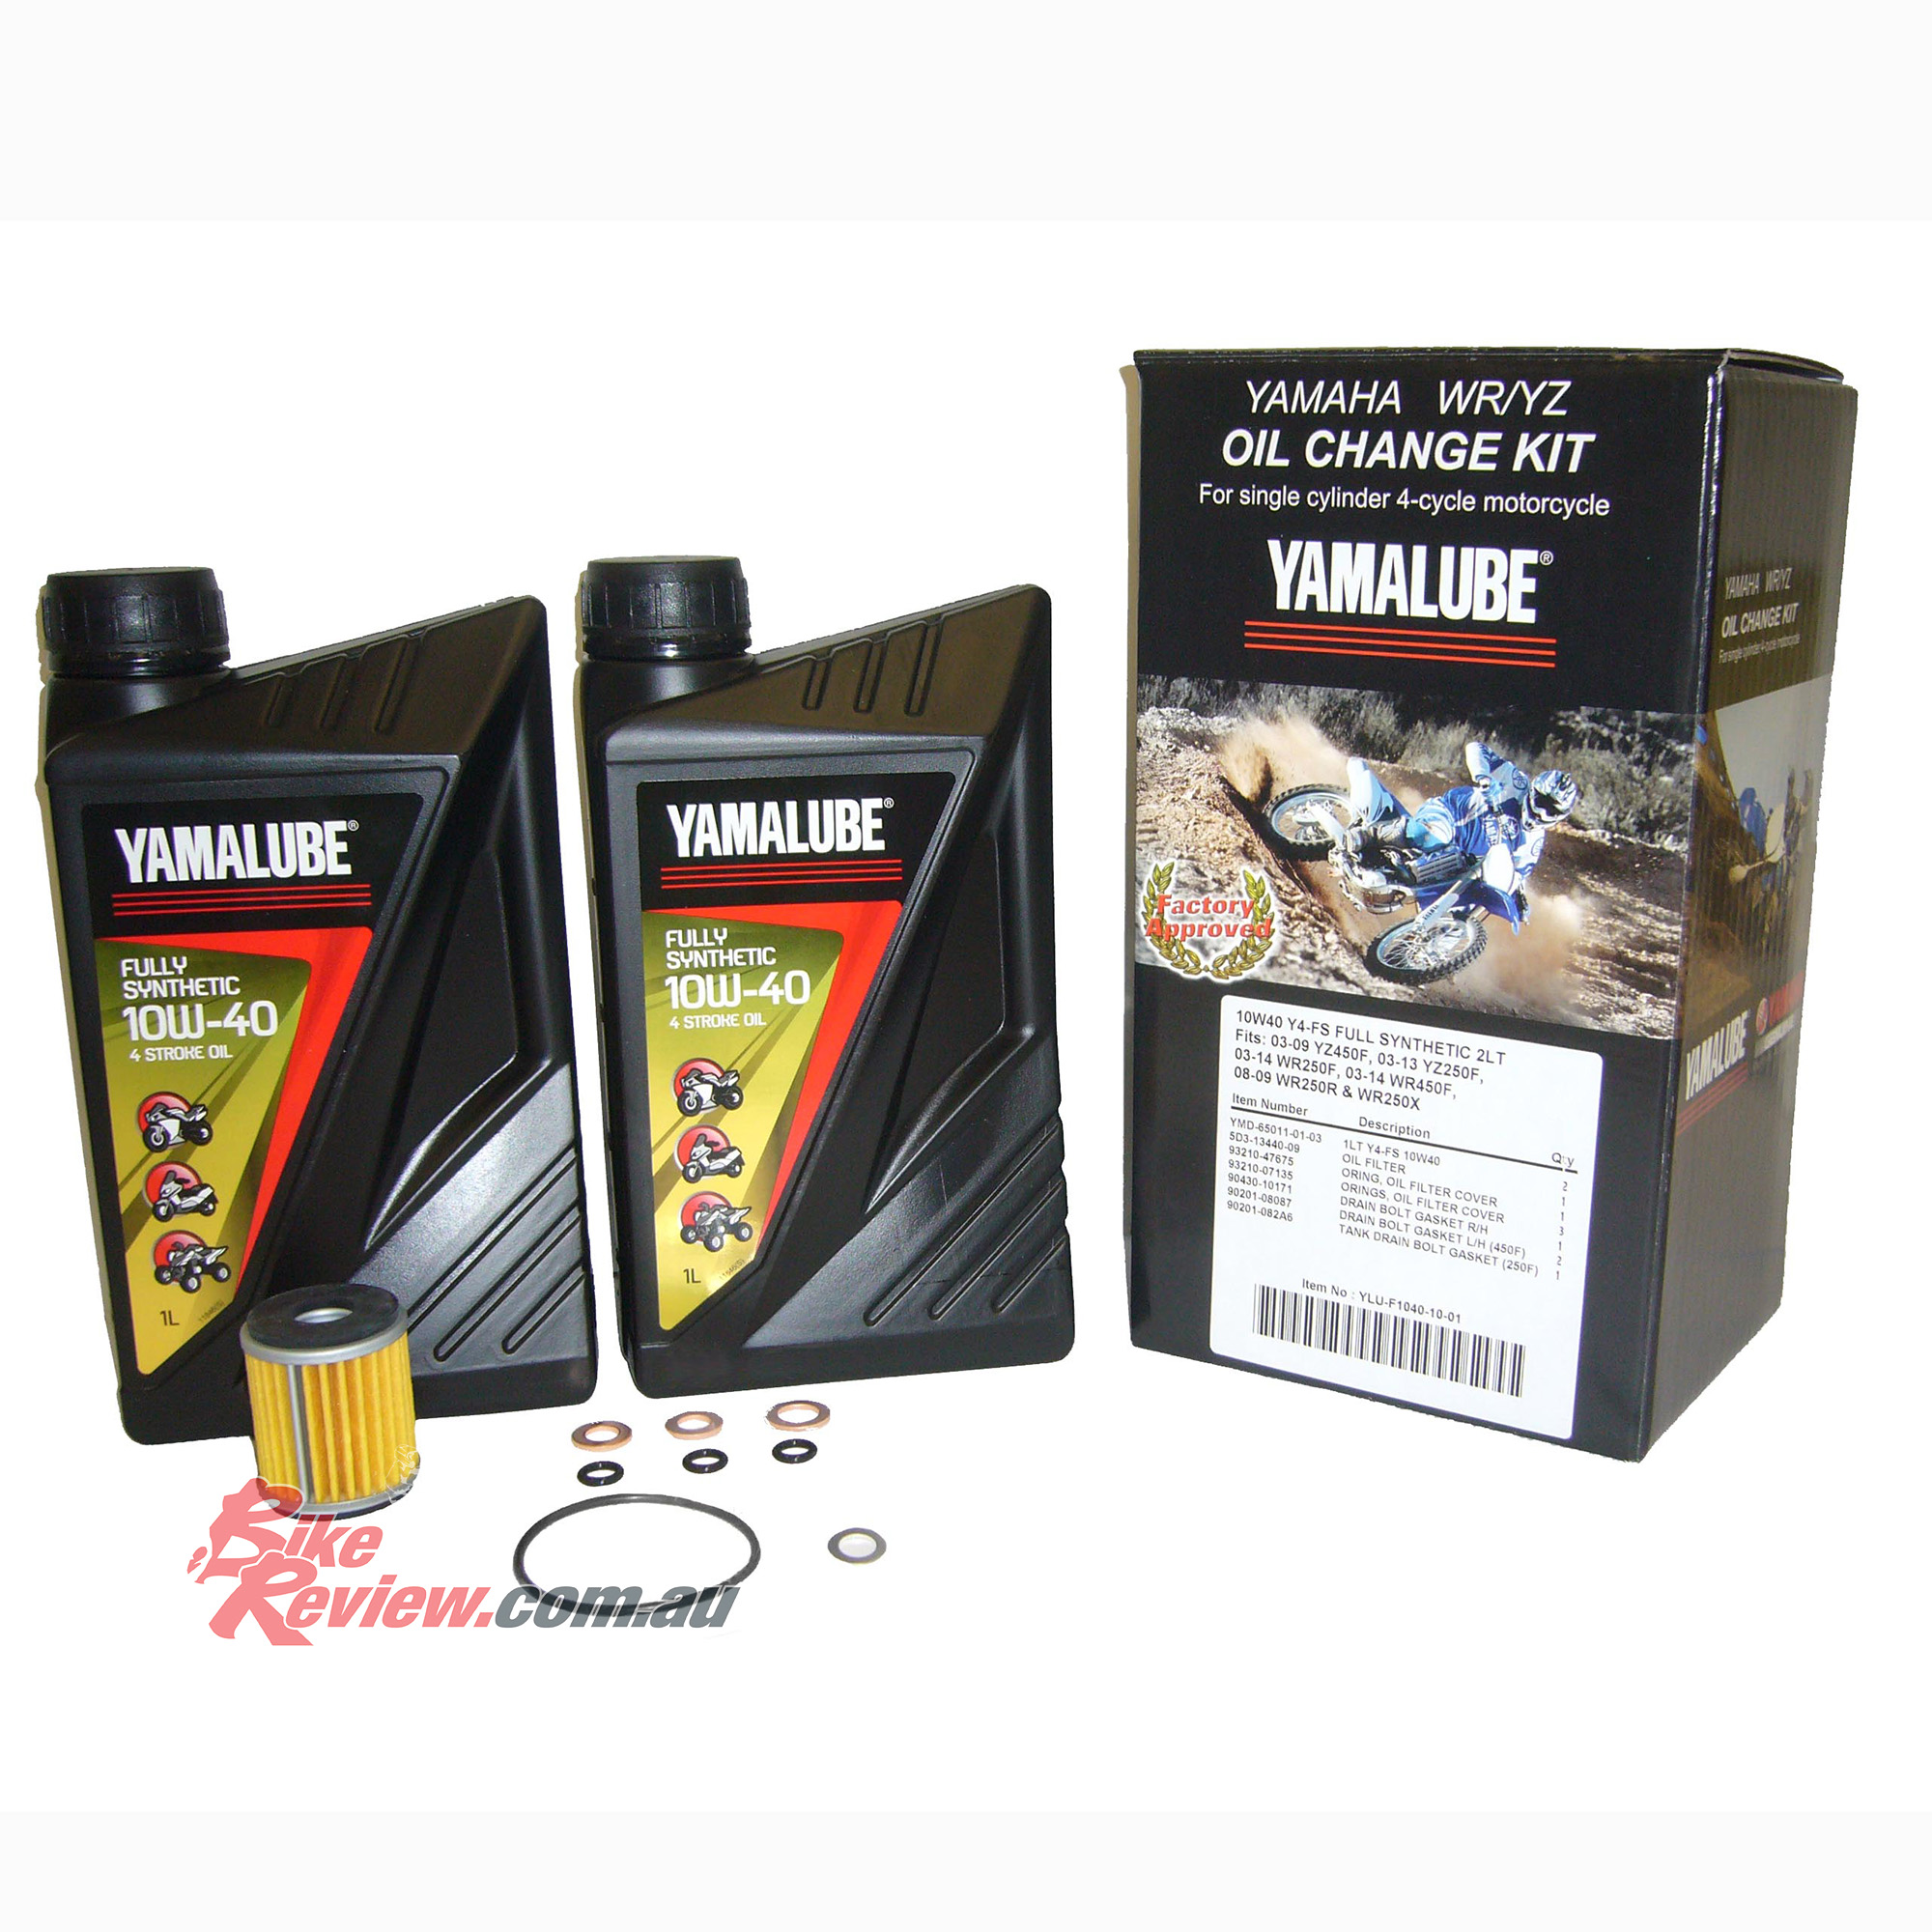 BikeReview Yamalube oil change kit